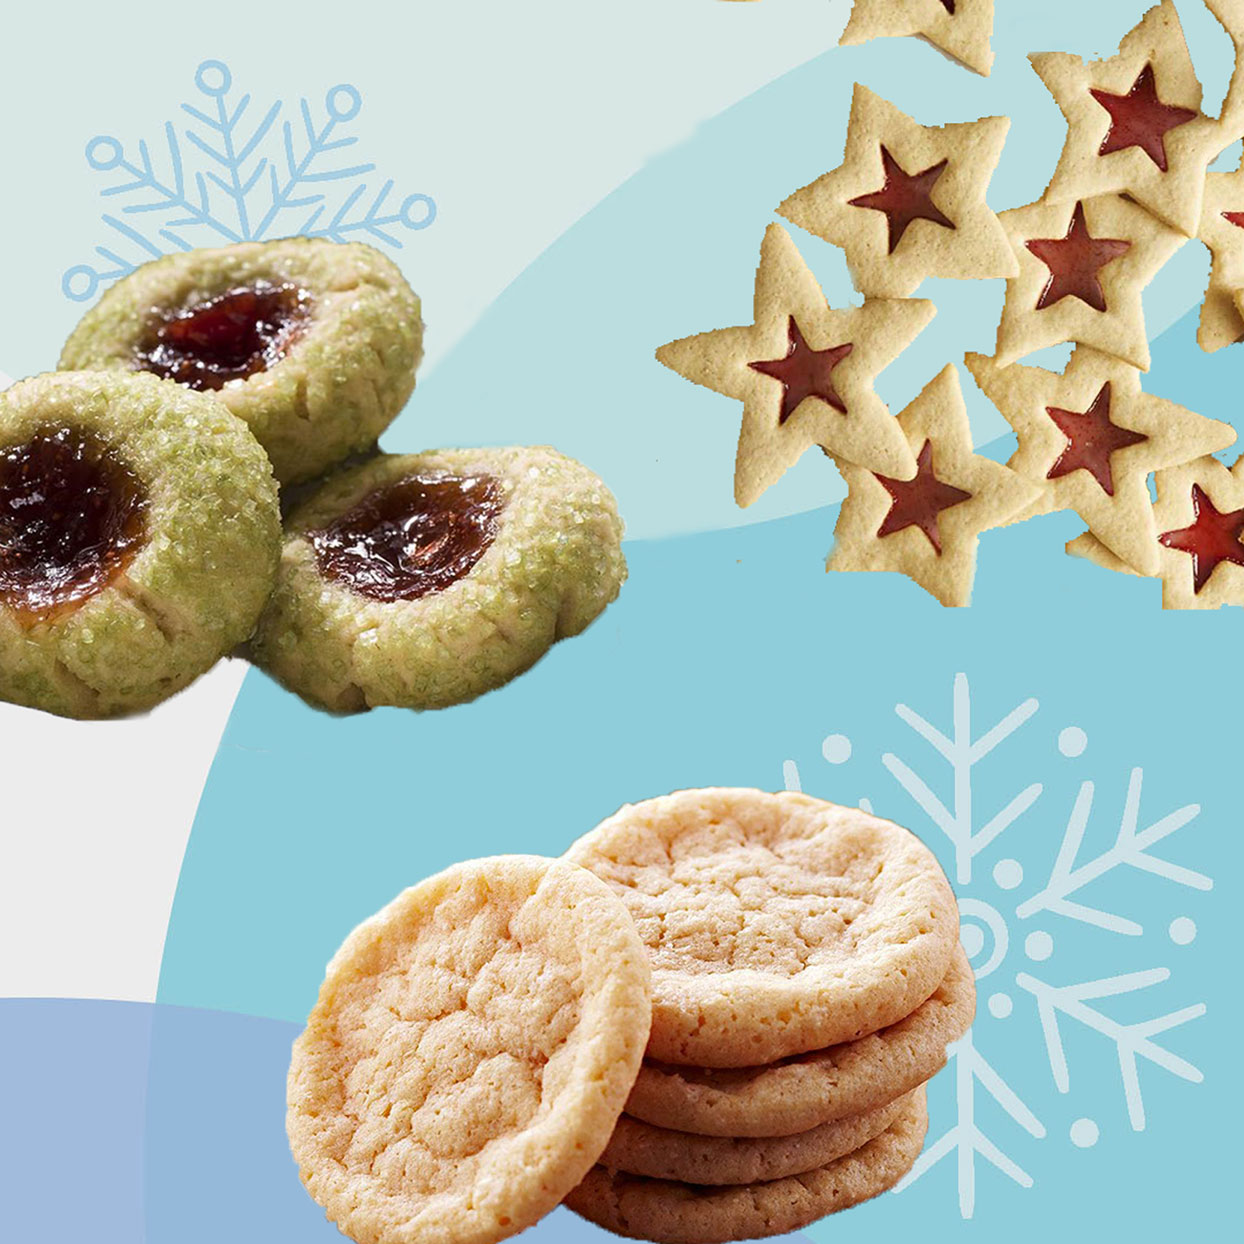 Holiday Cookies against a winter graphic background